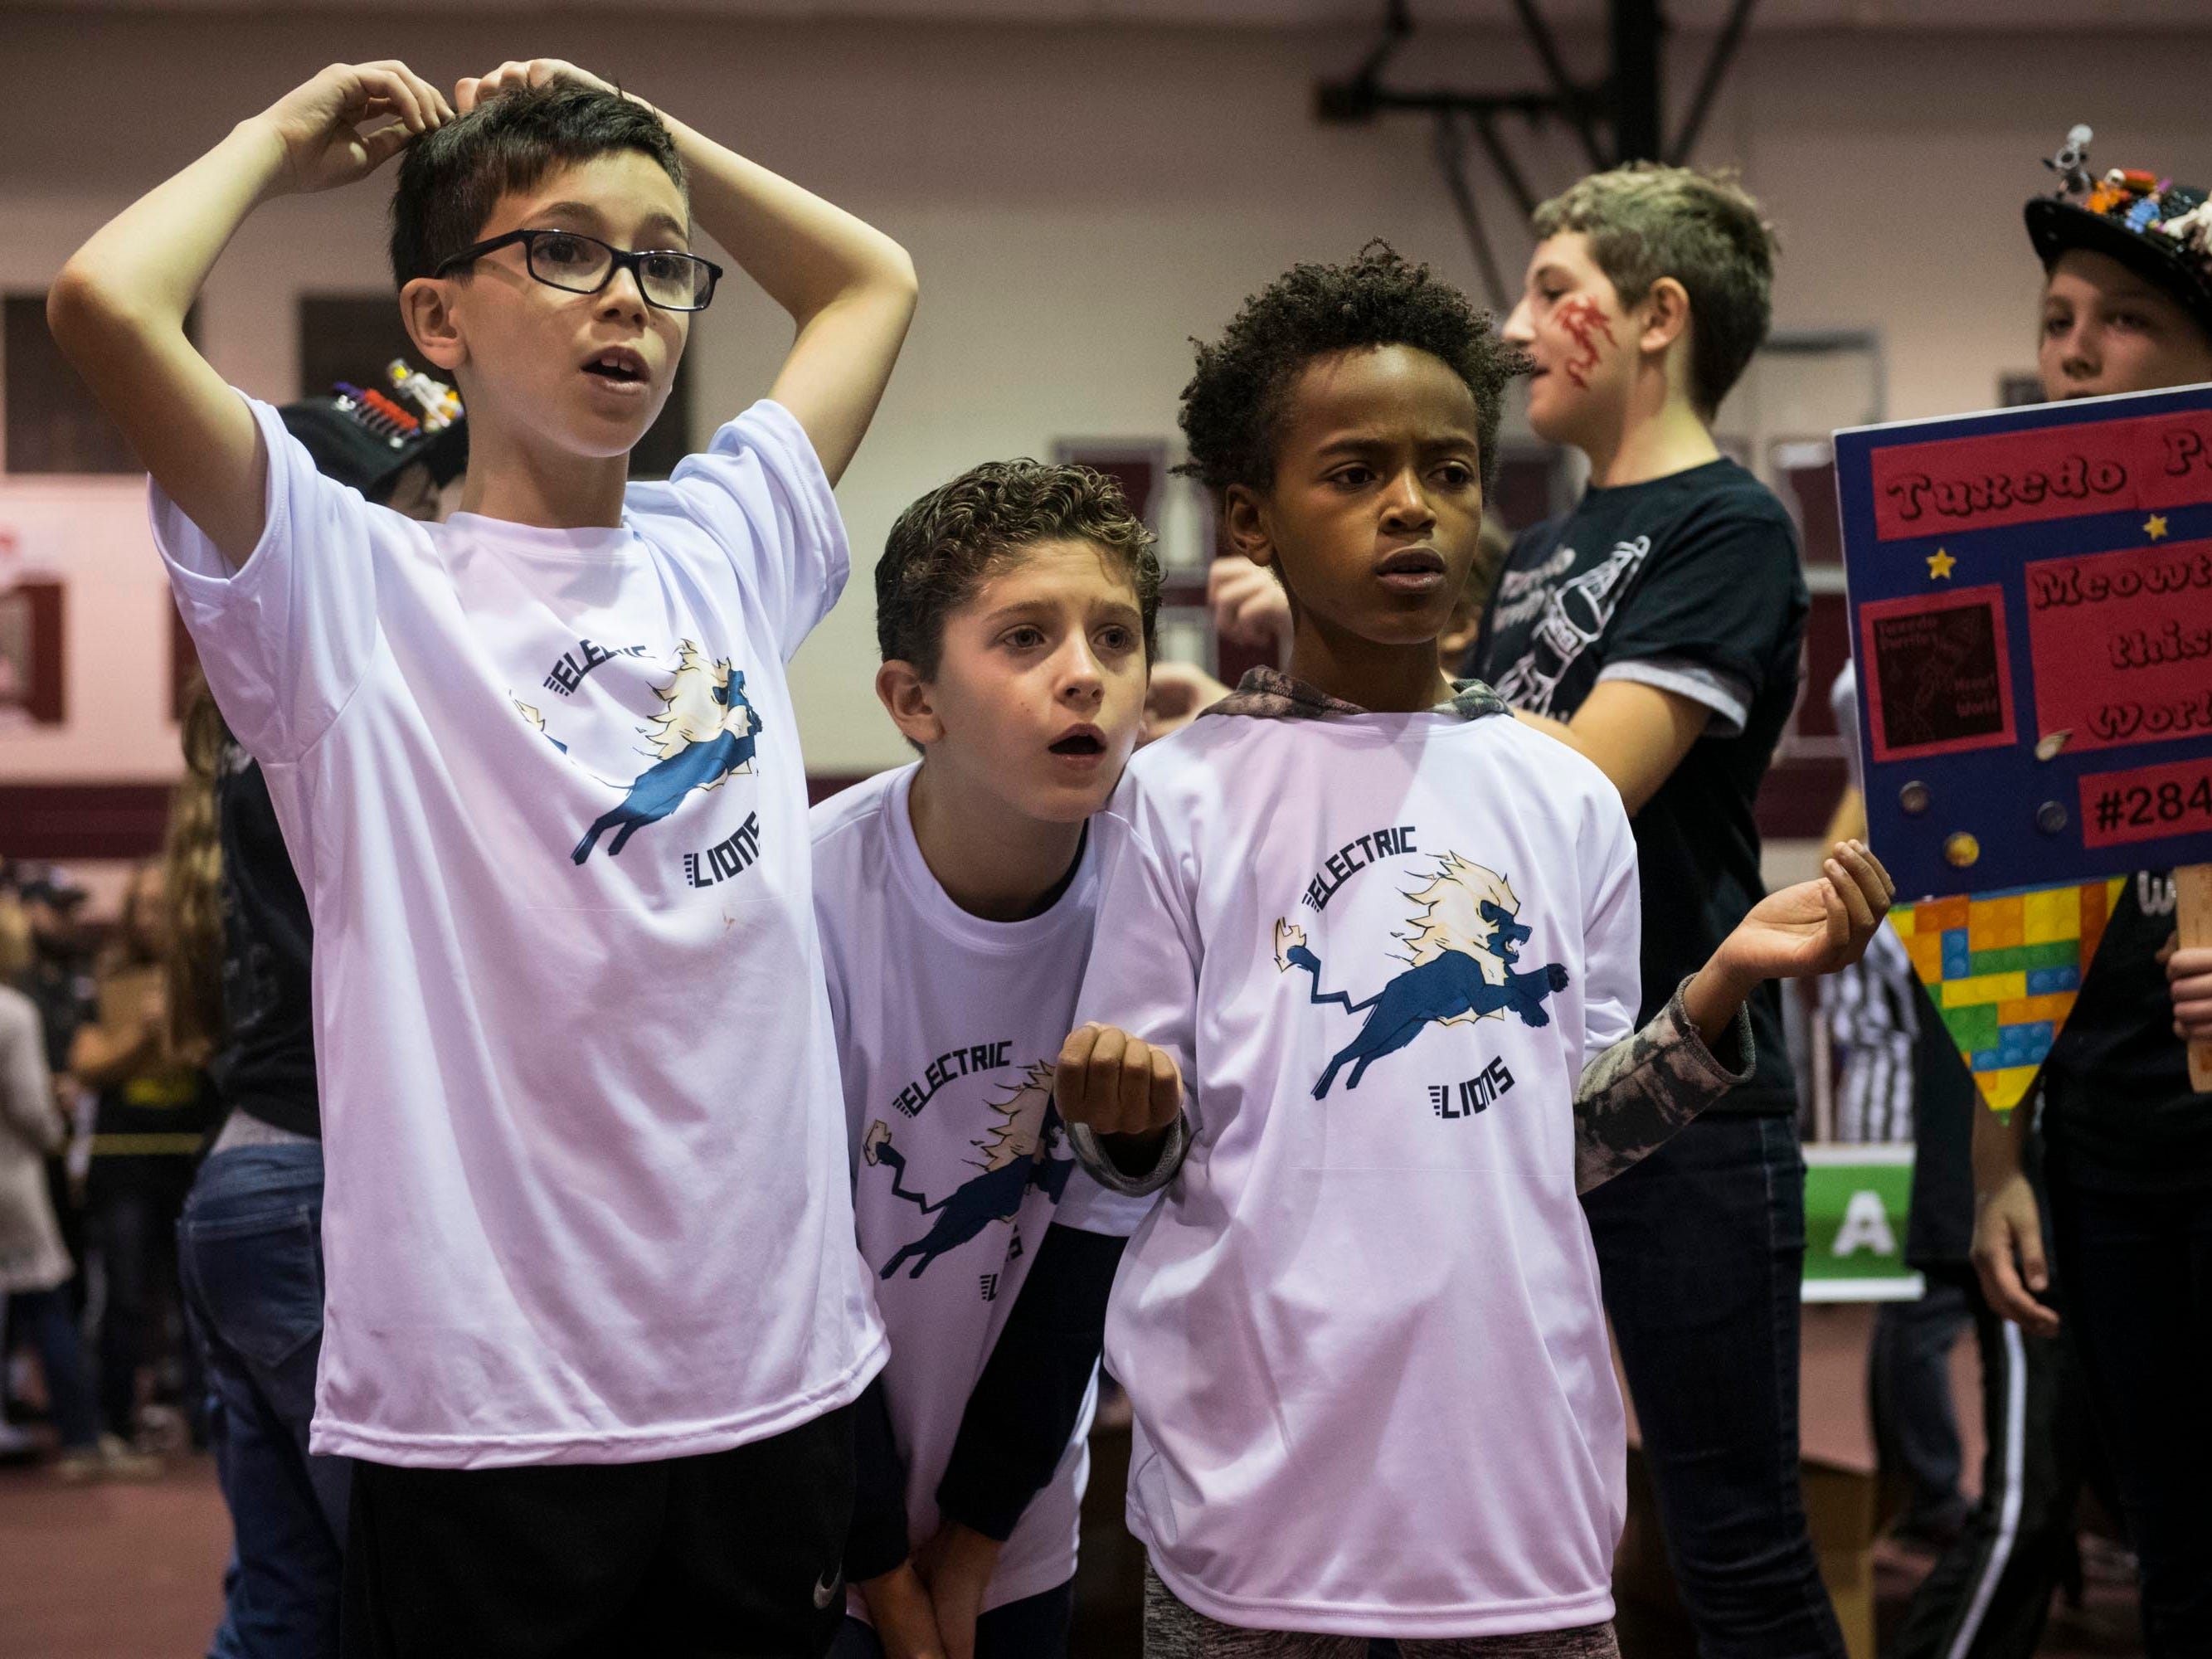 From left to right, AJ Priziola, 10, Sal Vitale, 10, and Xavier Smith, 10, watch anxiously as their teammates compete.